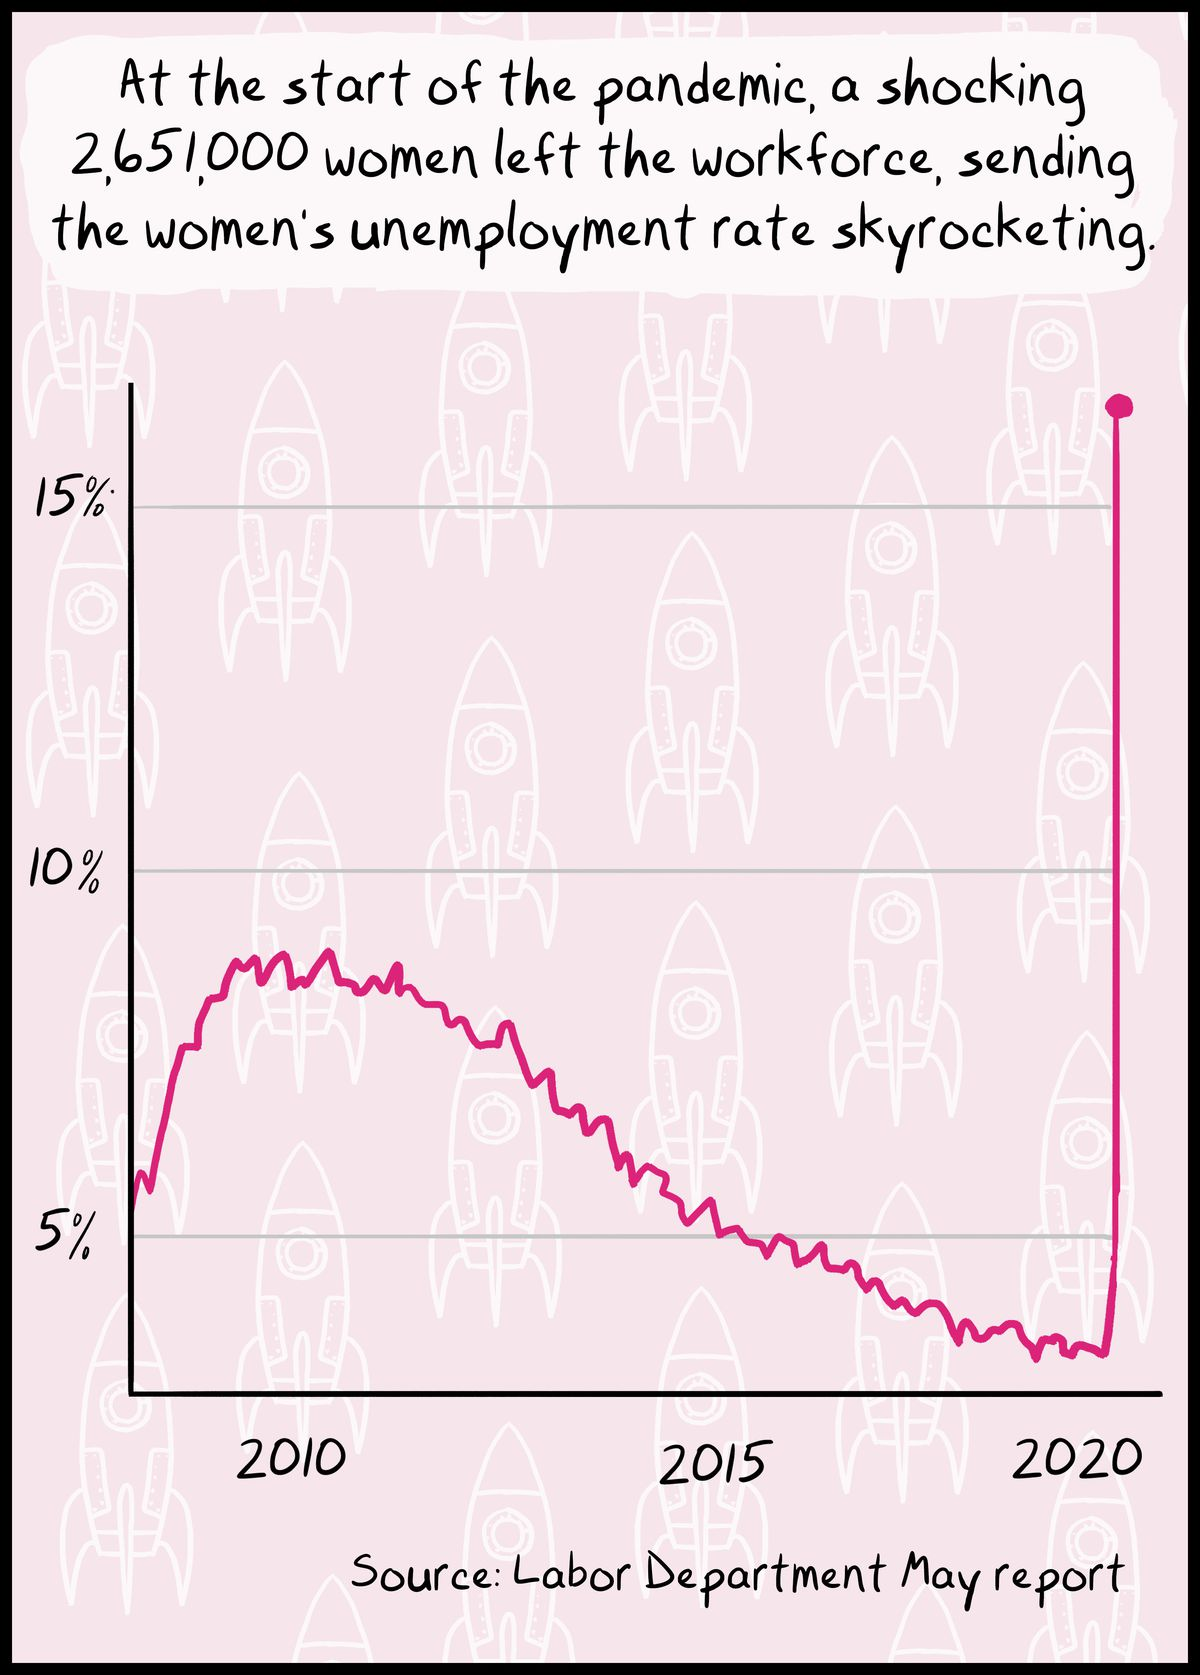 At the start of the pandemic, a shocking 2,651,000 women left the workforce, sending the women's unemployment rate skyrocketing.